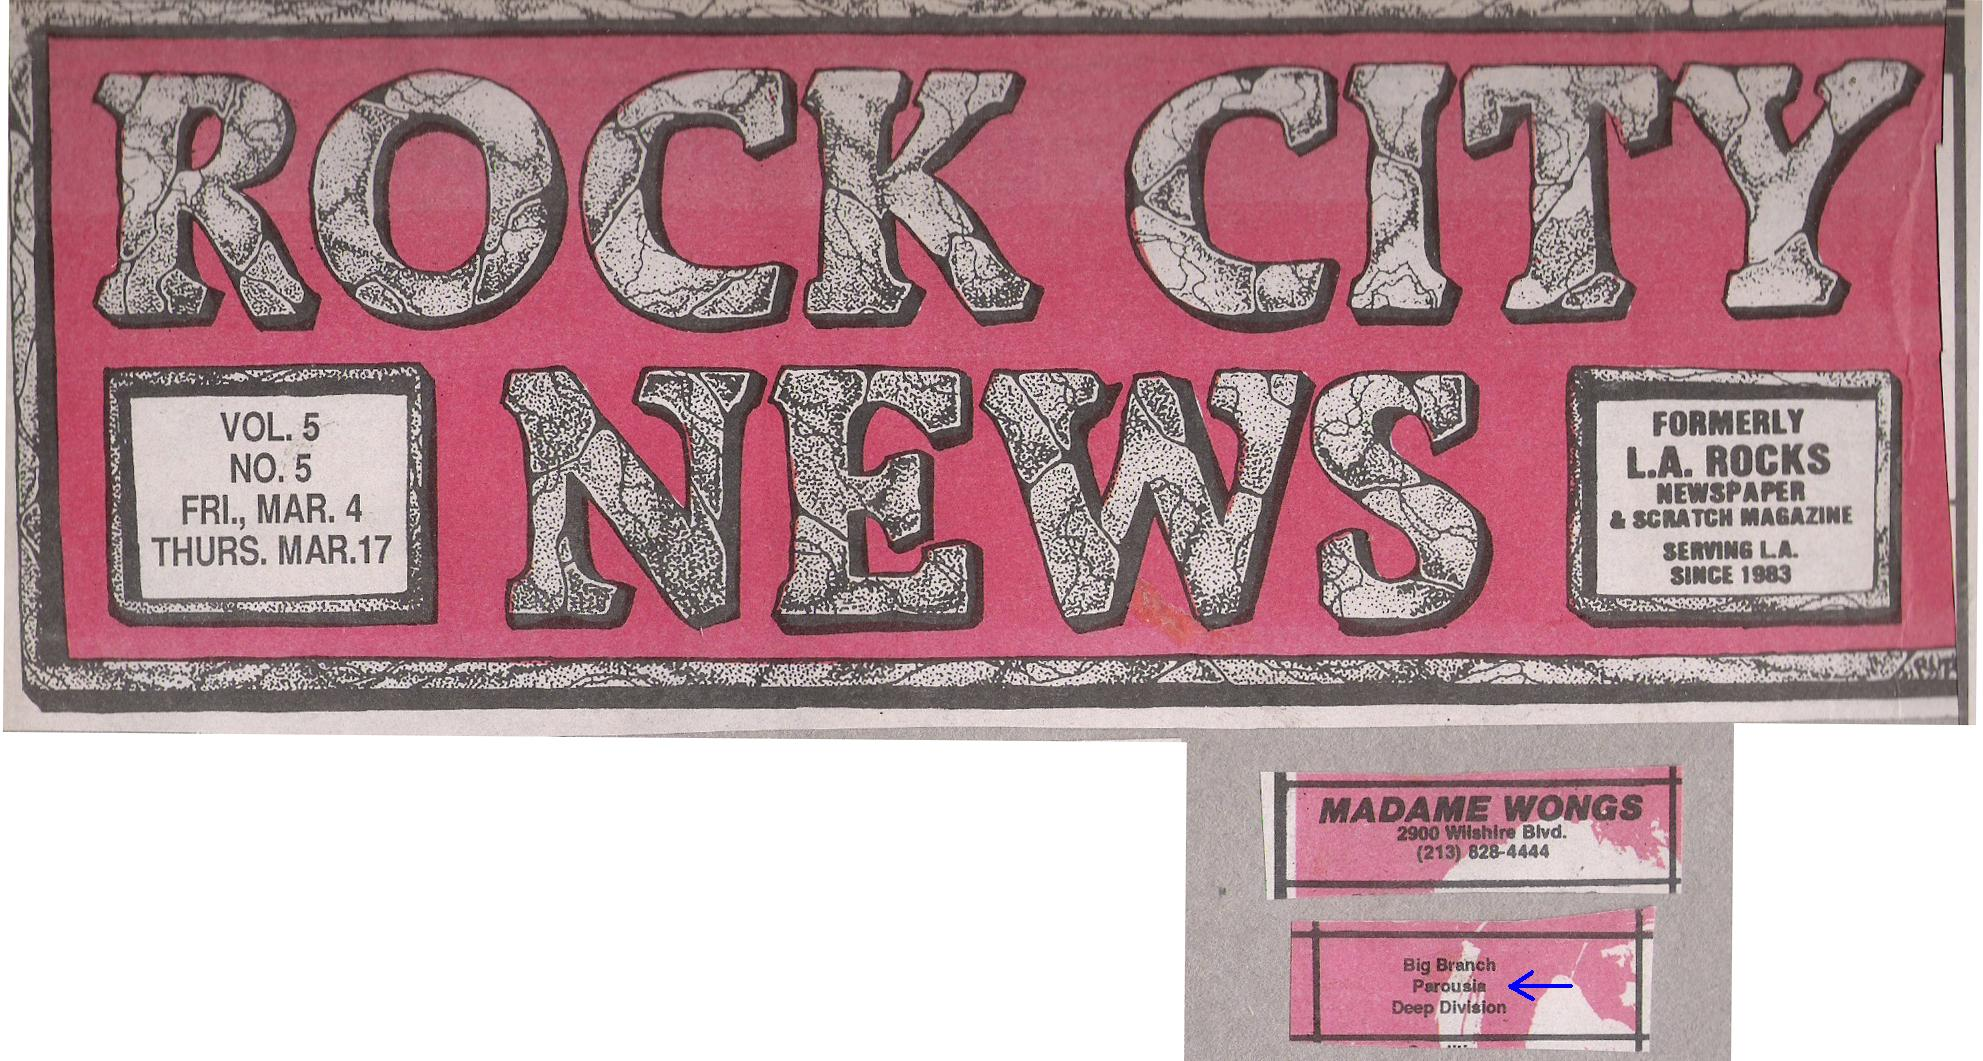 Rock City News MArch 4th, 1988